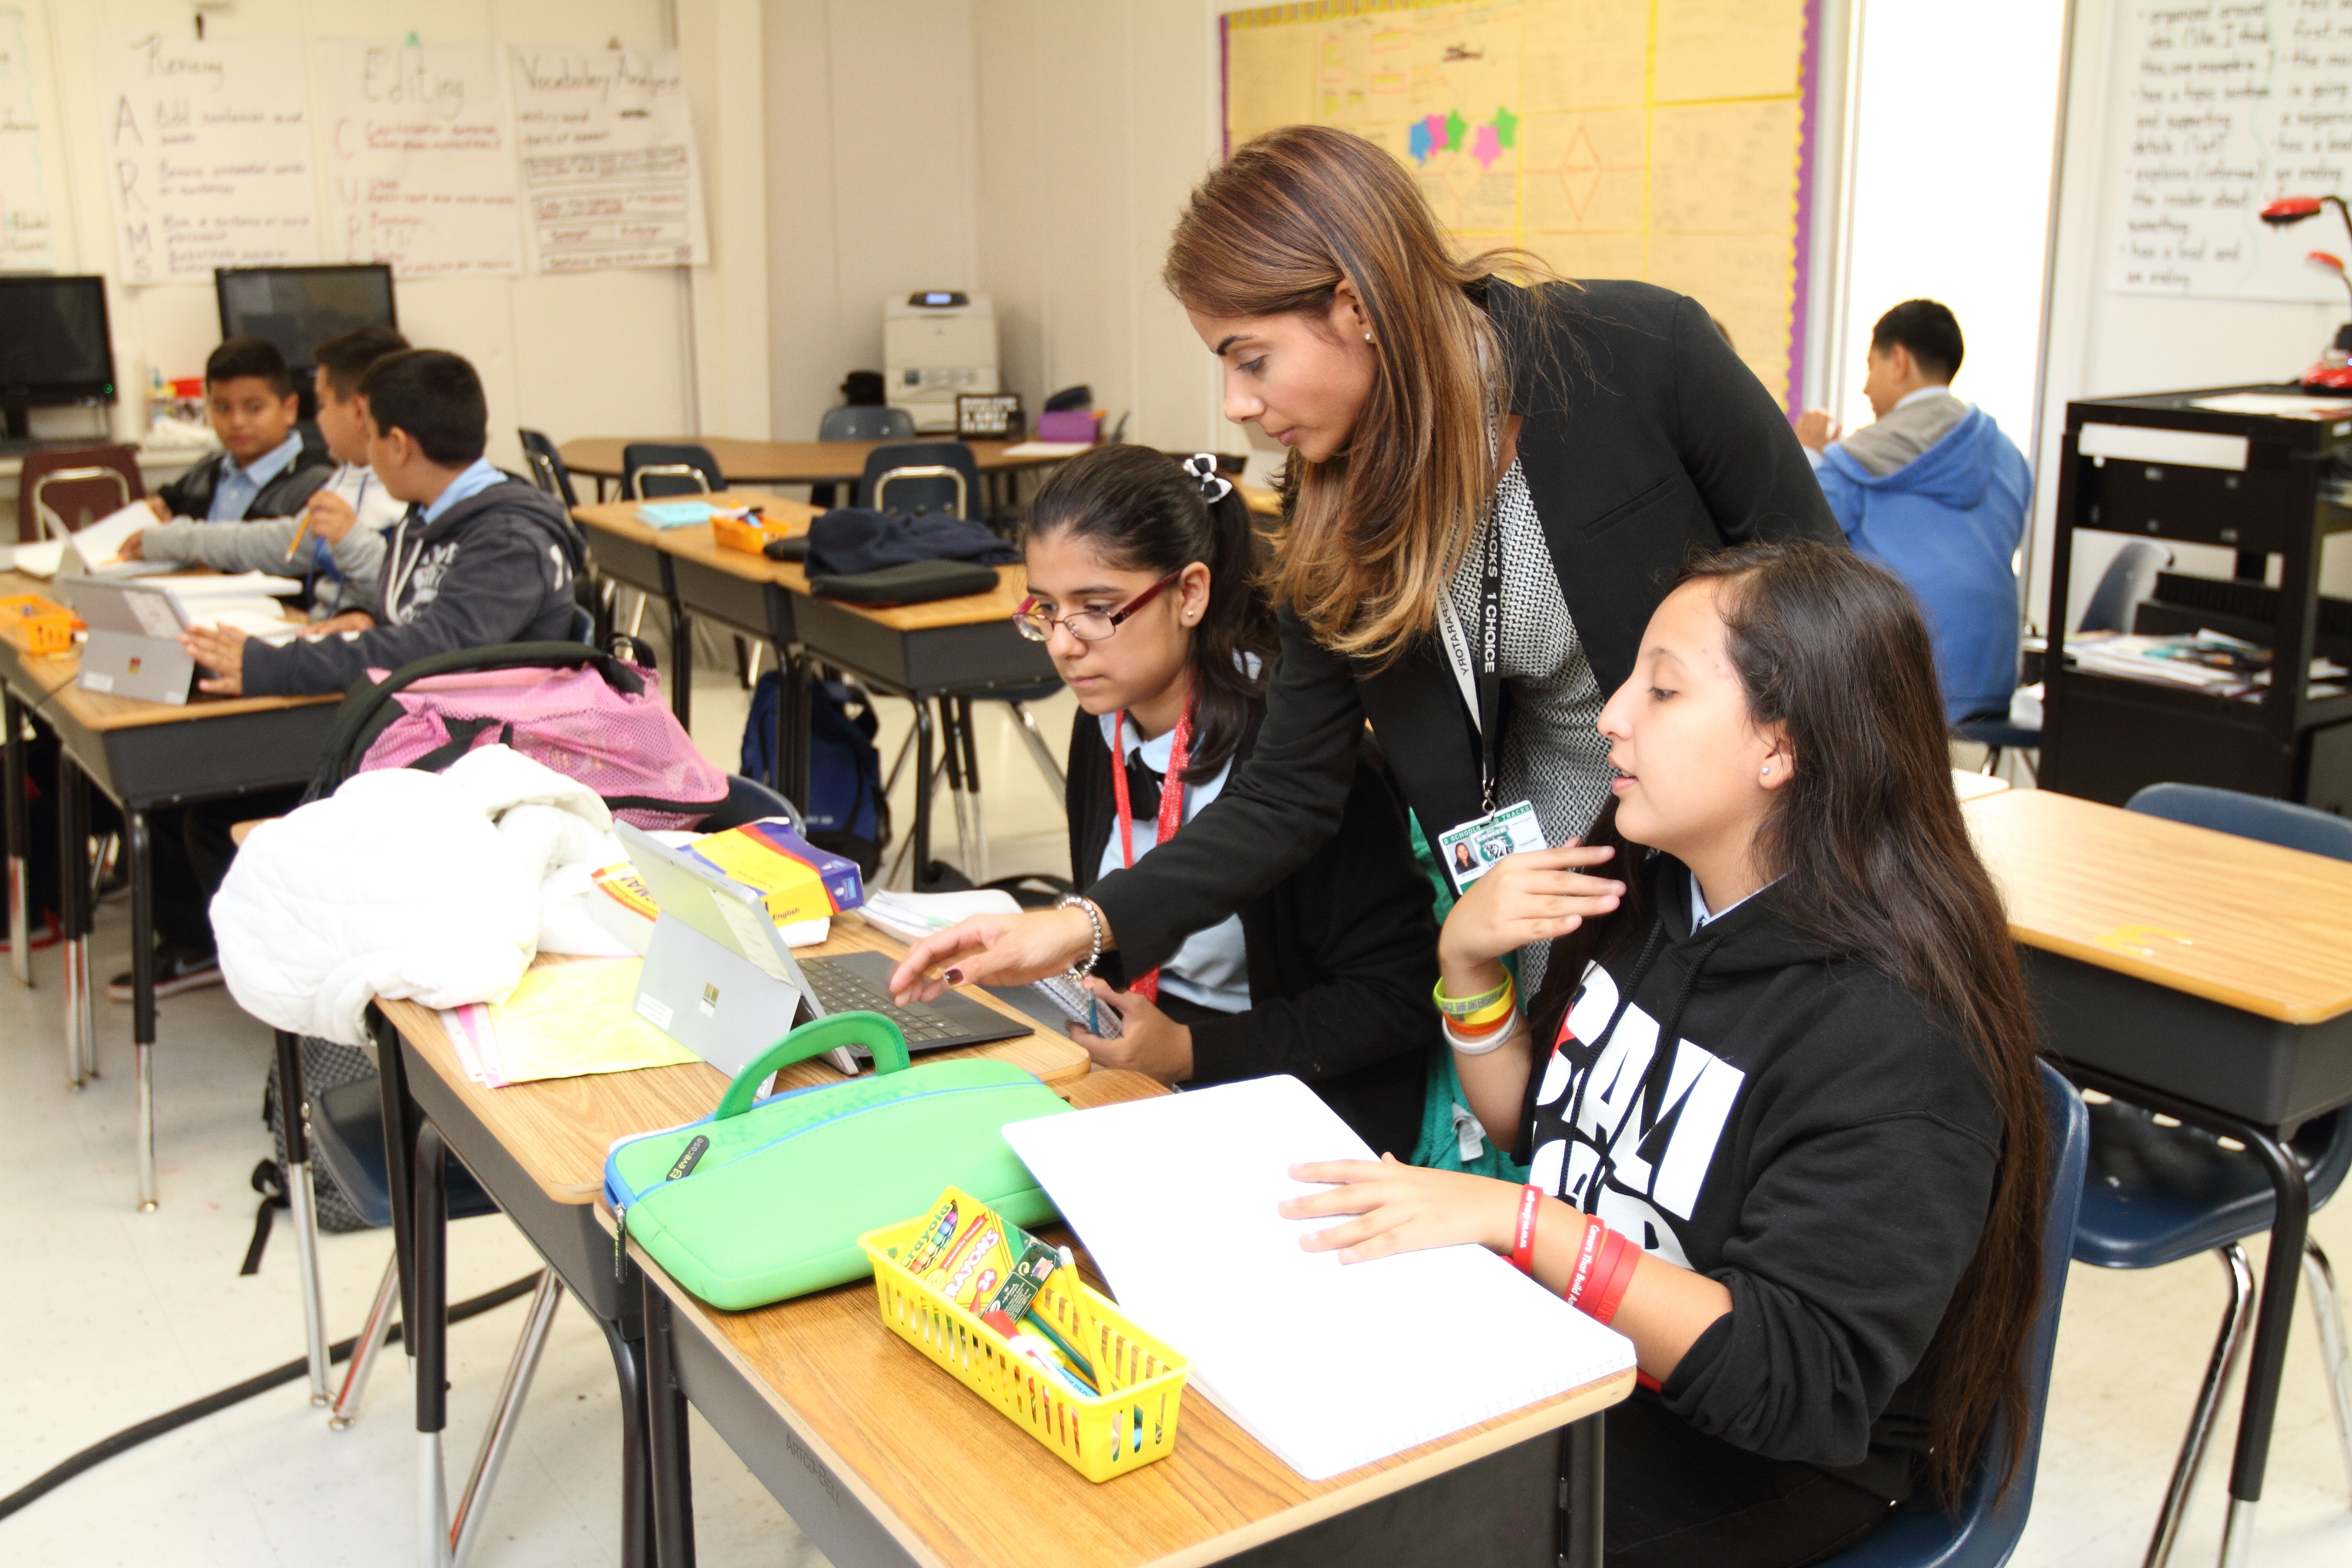 A report on California's dual-language immersion push sheds light on a bilingual teacher shortage: the number of teachers with bilingual certifications decreased from about 1,500 annually in the 1990s to around 700 in 2015-16.